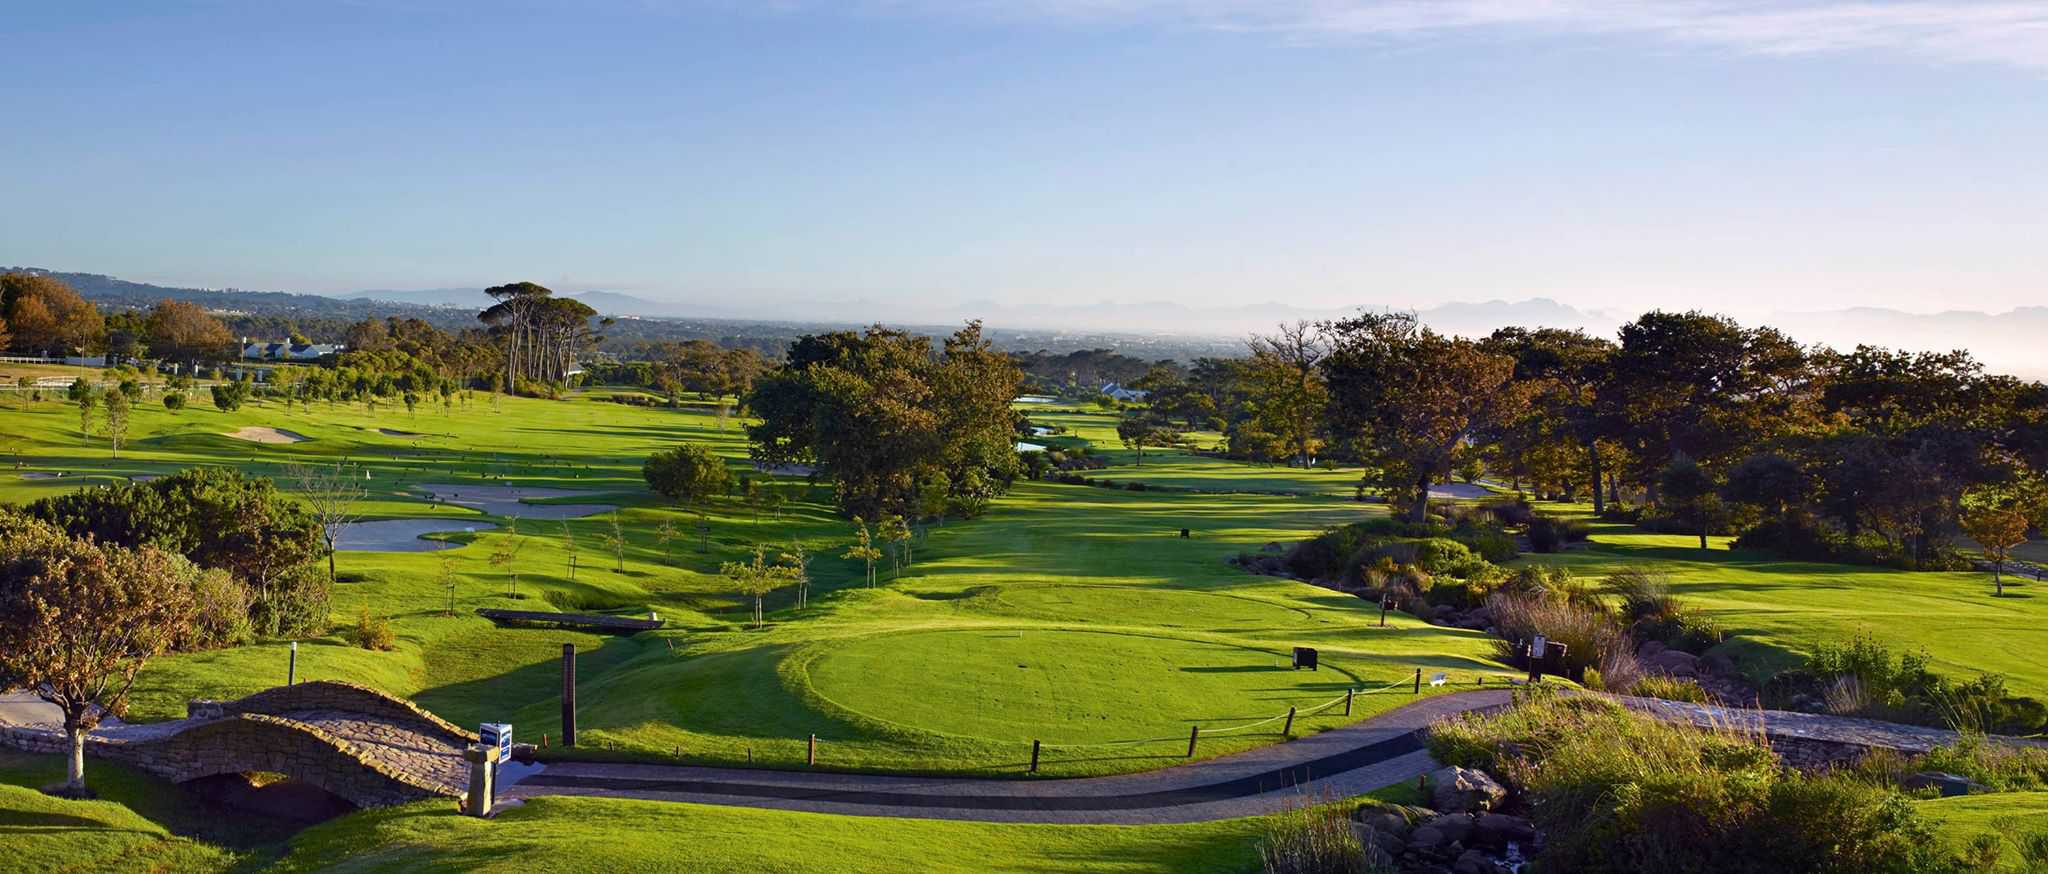 cape town luxury golf holiday cape town golf in south. Black Bedroom Furniture Sets. Home Design Ideas